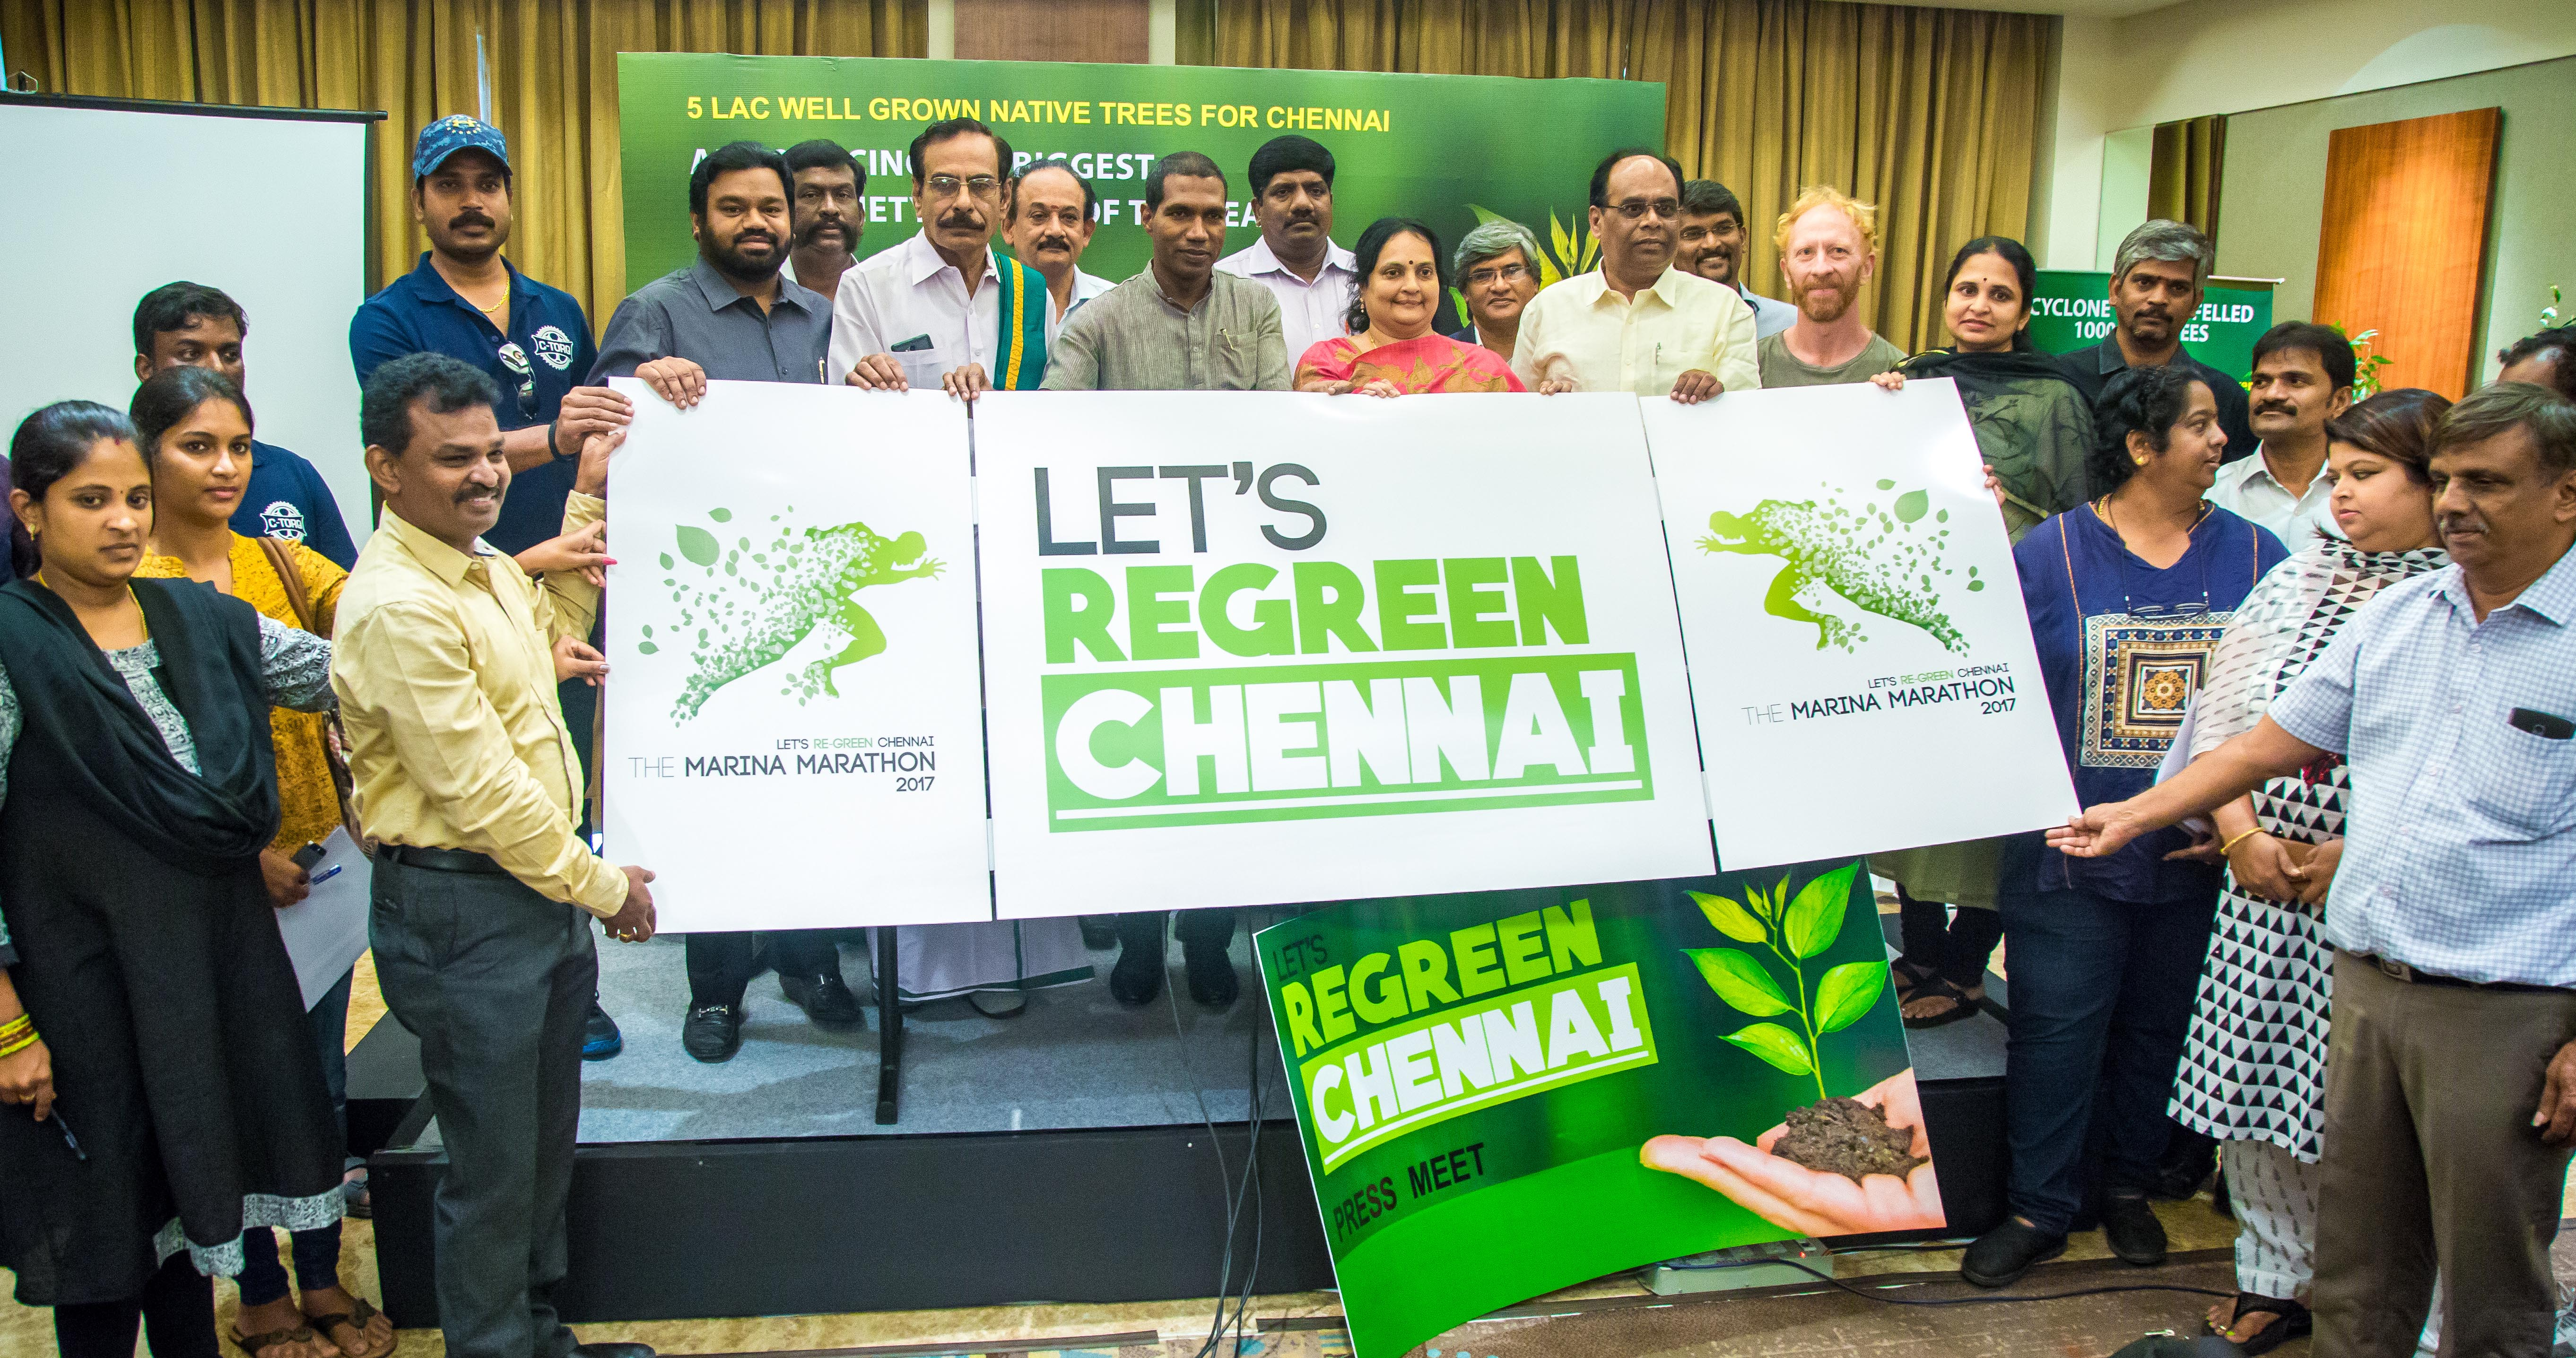 THE REGREEN CHENNAI - A Movement for Reviving Green Cover of the City Inaugurated Today